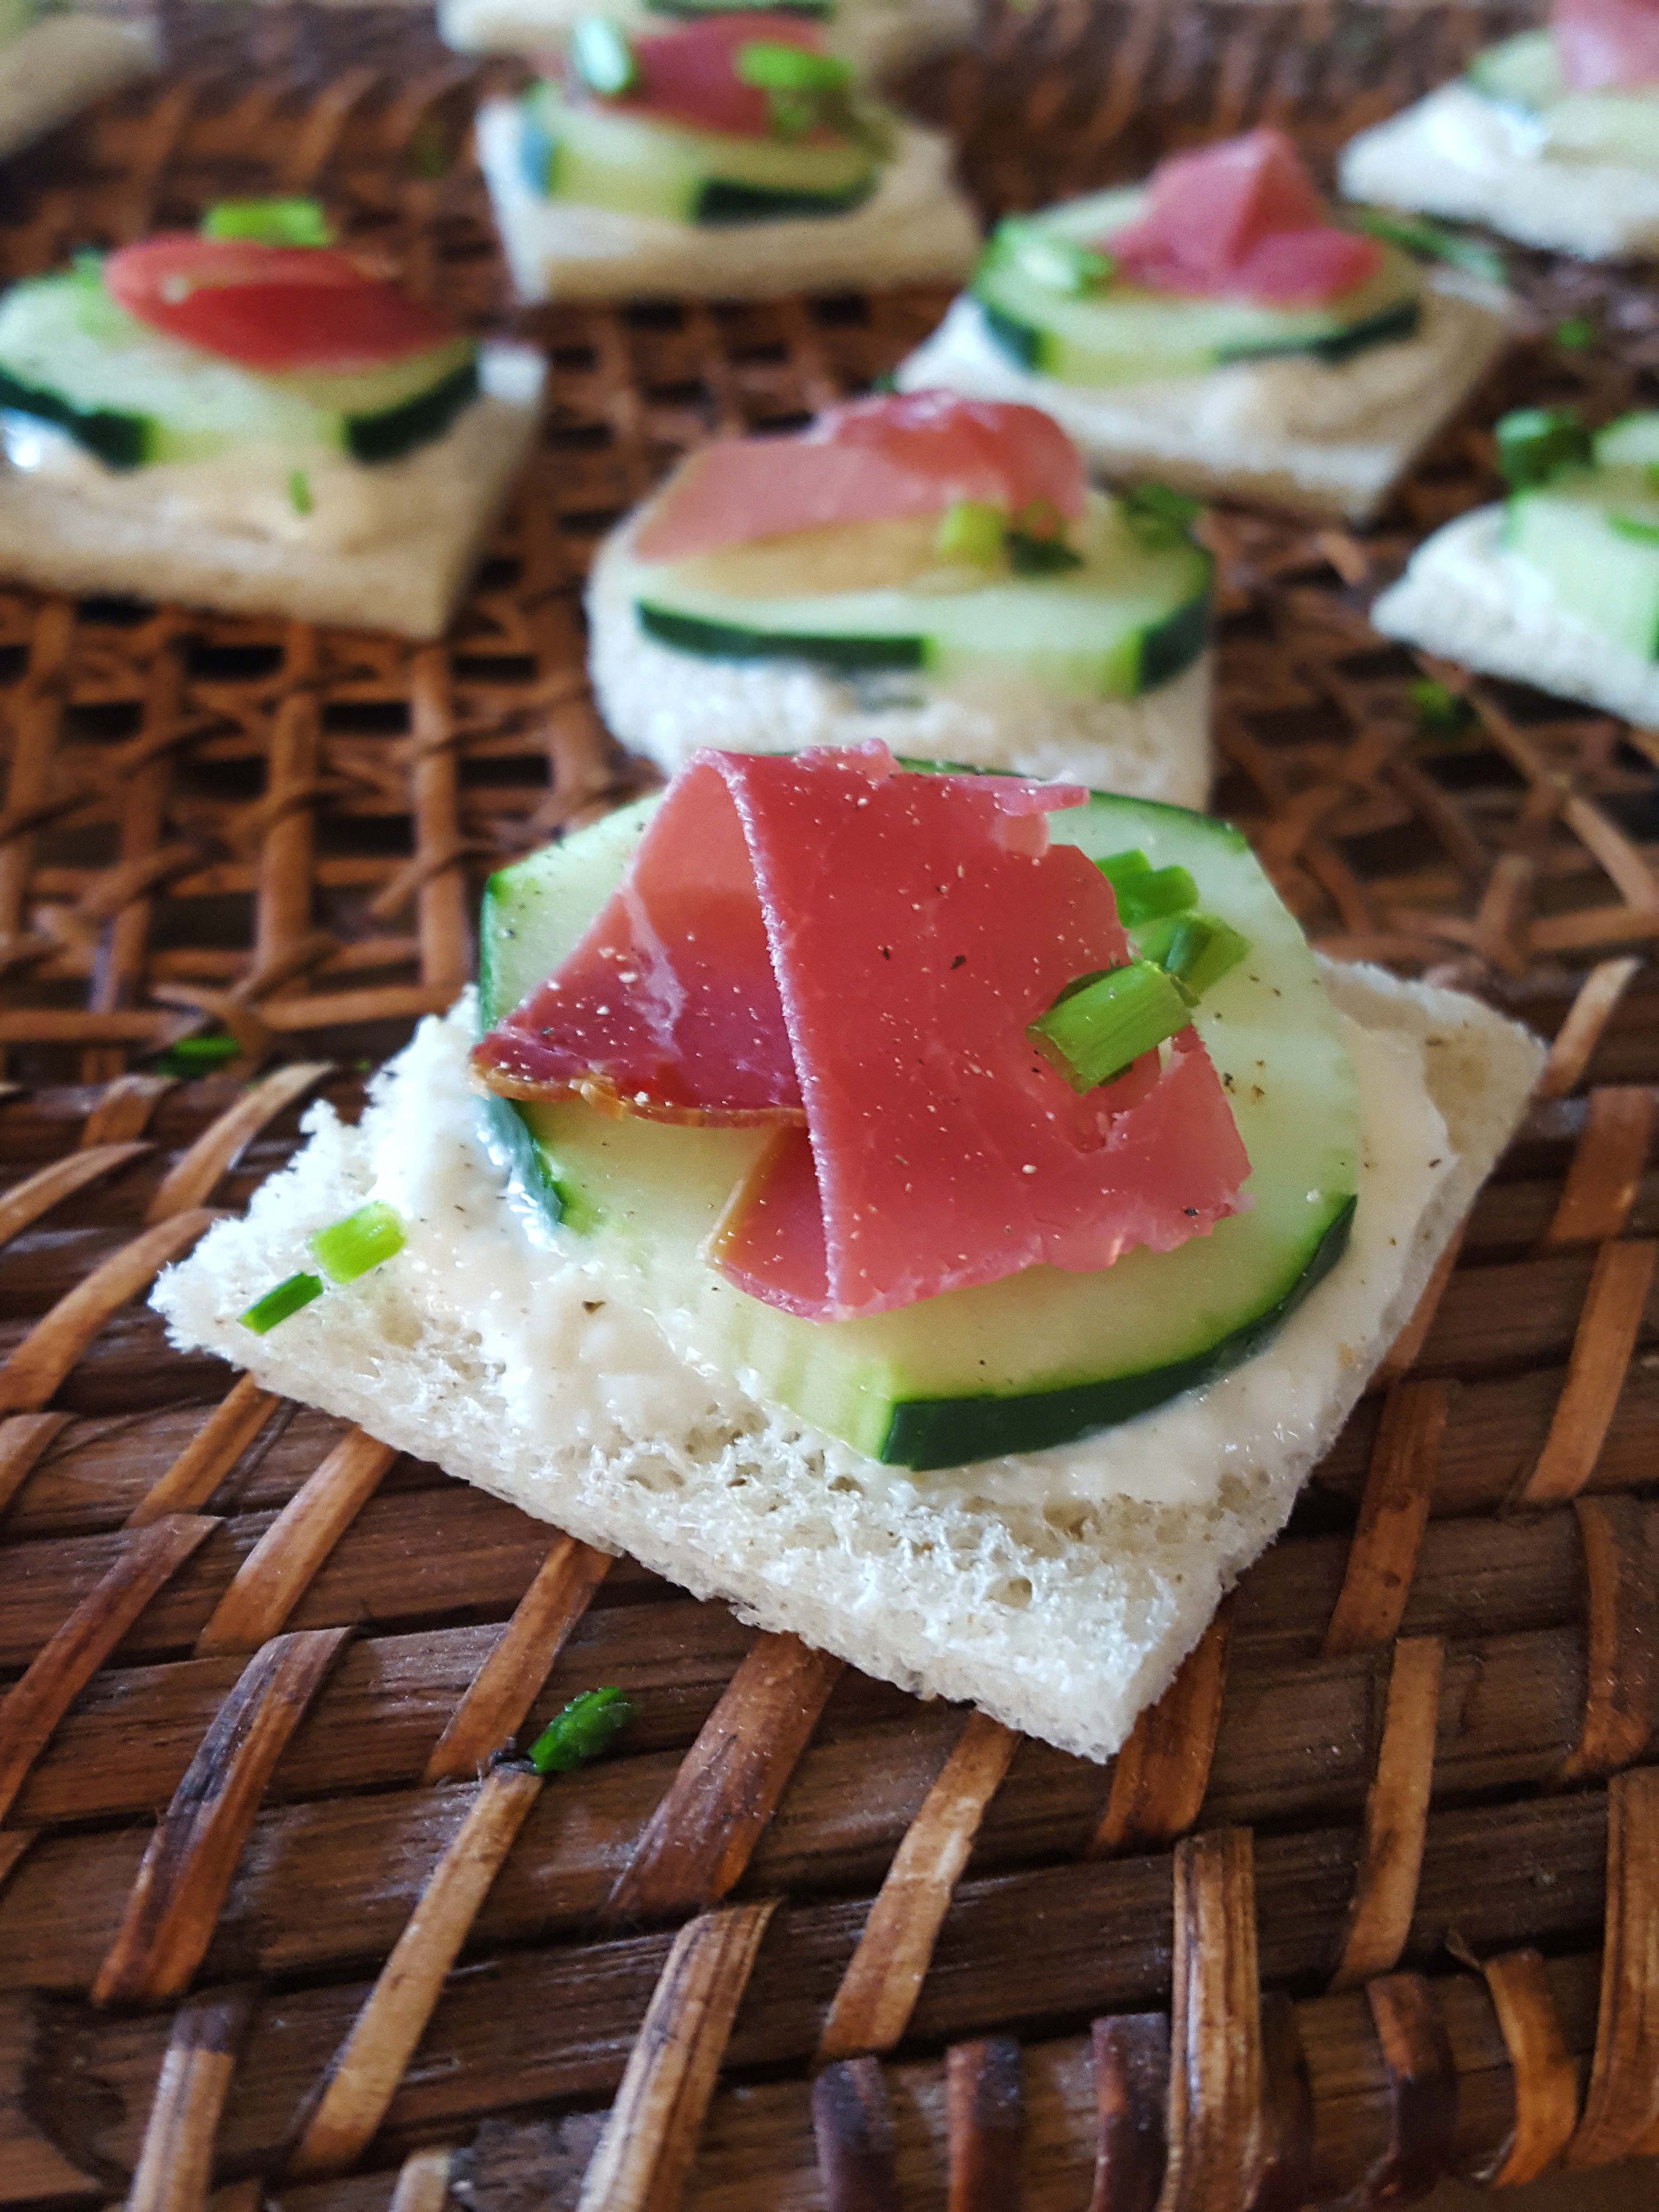 Canape 2016 Dried Beef Canape With Cream Cheese And Cucumber Recipe Knauss